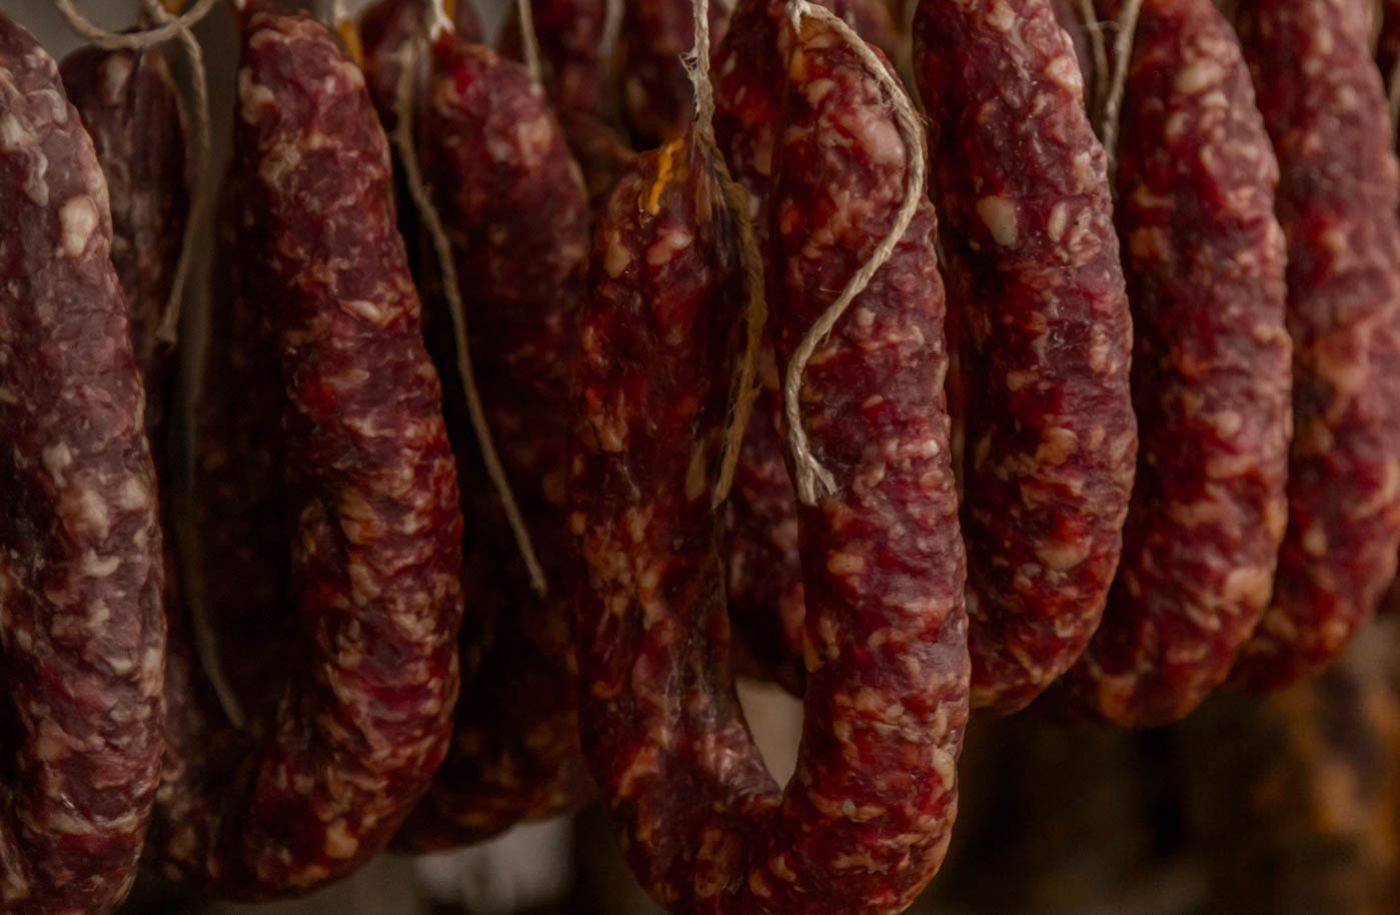 Stirrup salami during the maturing phase